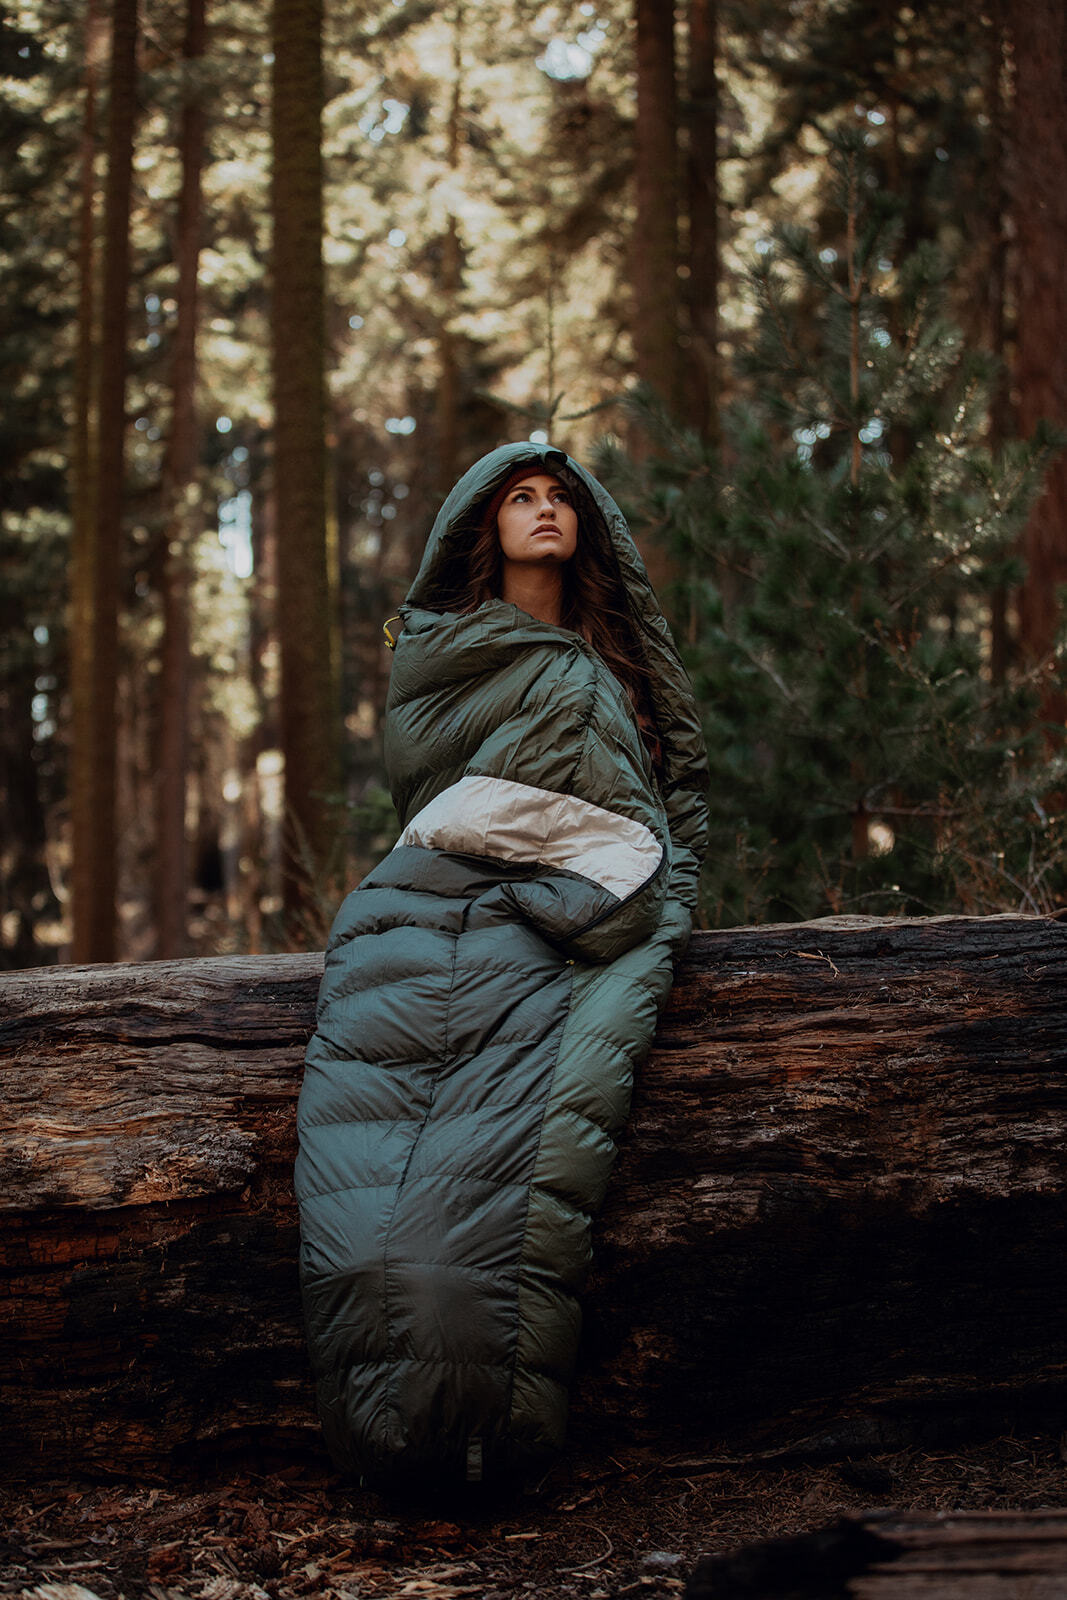 Woman snuggled in a sleeping bag while sitting on a log and staring up at the sky.